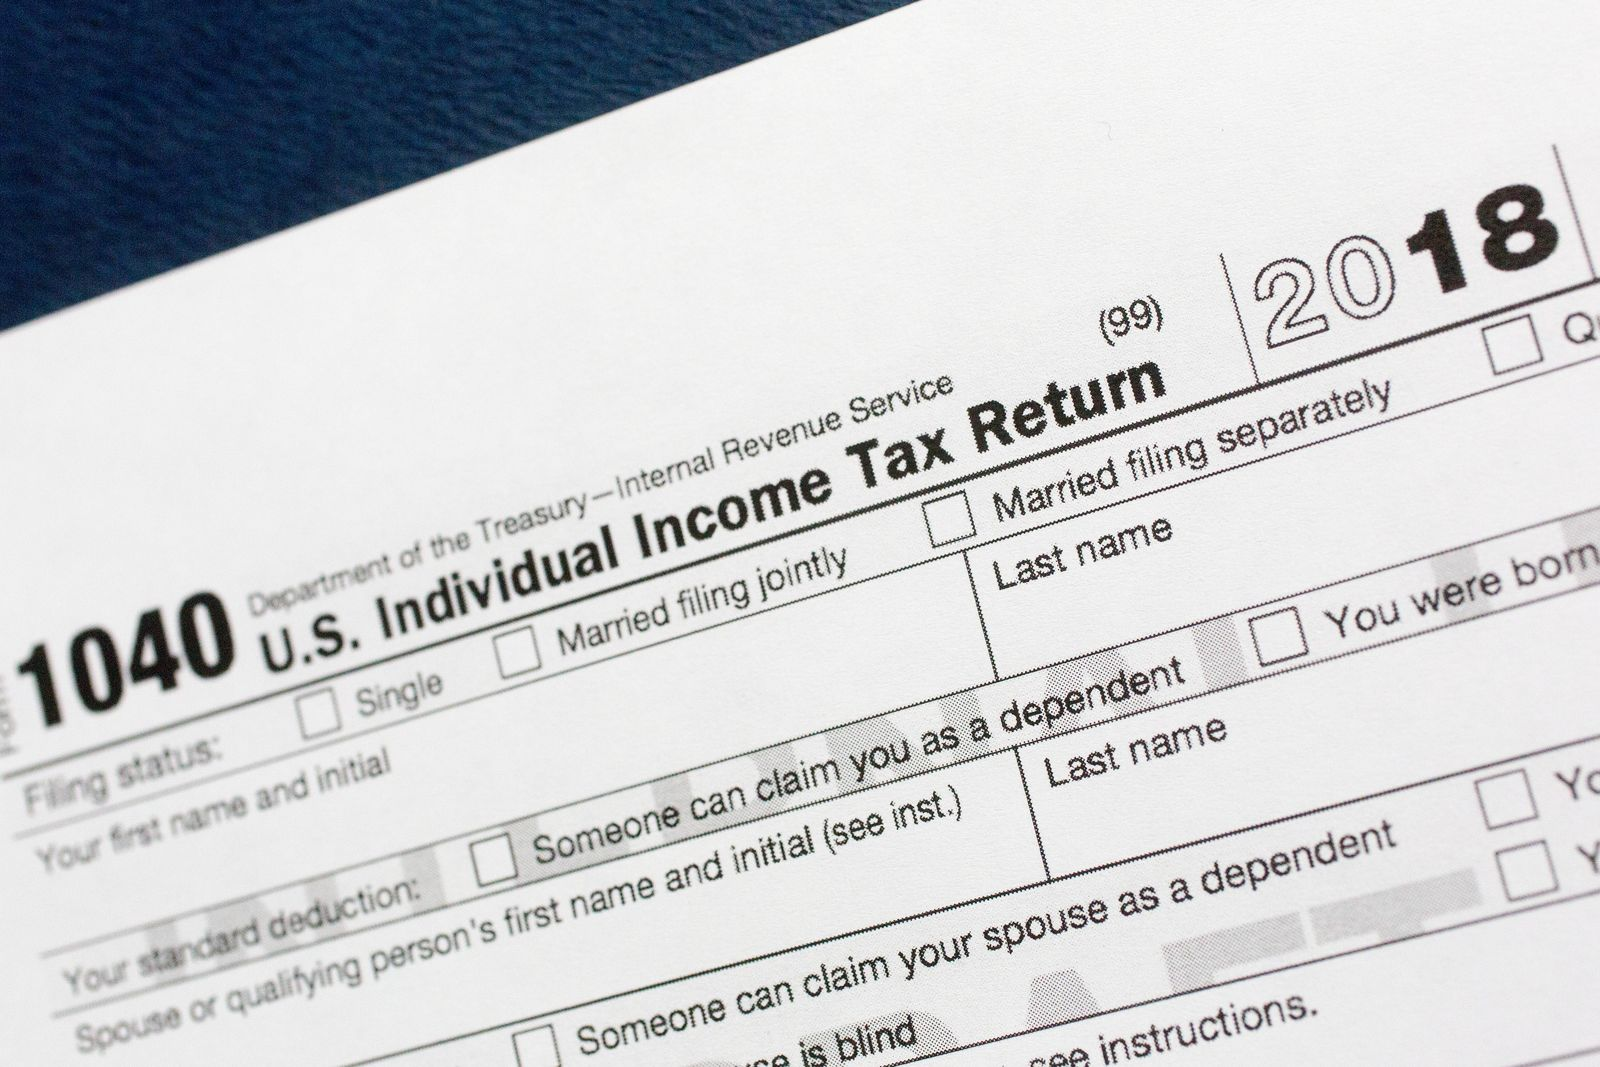 FILE- This July 24, 2018, file photo shows a portion of the 1040 U.S. Individual Income Tax Return form for 2018 in New York. (AP Photo/Mark Lennihan, File)